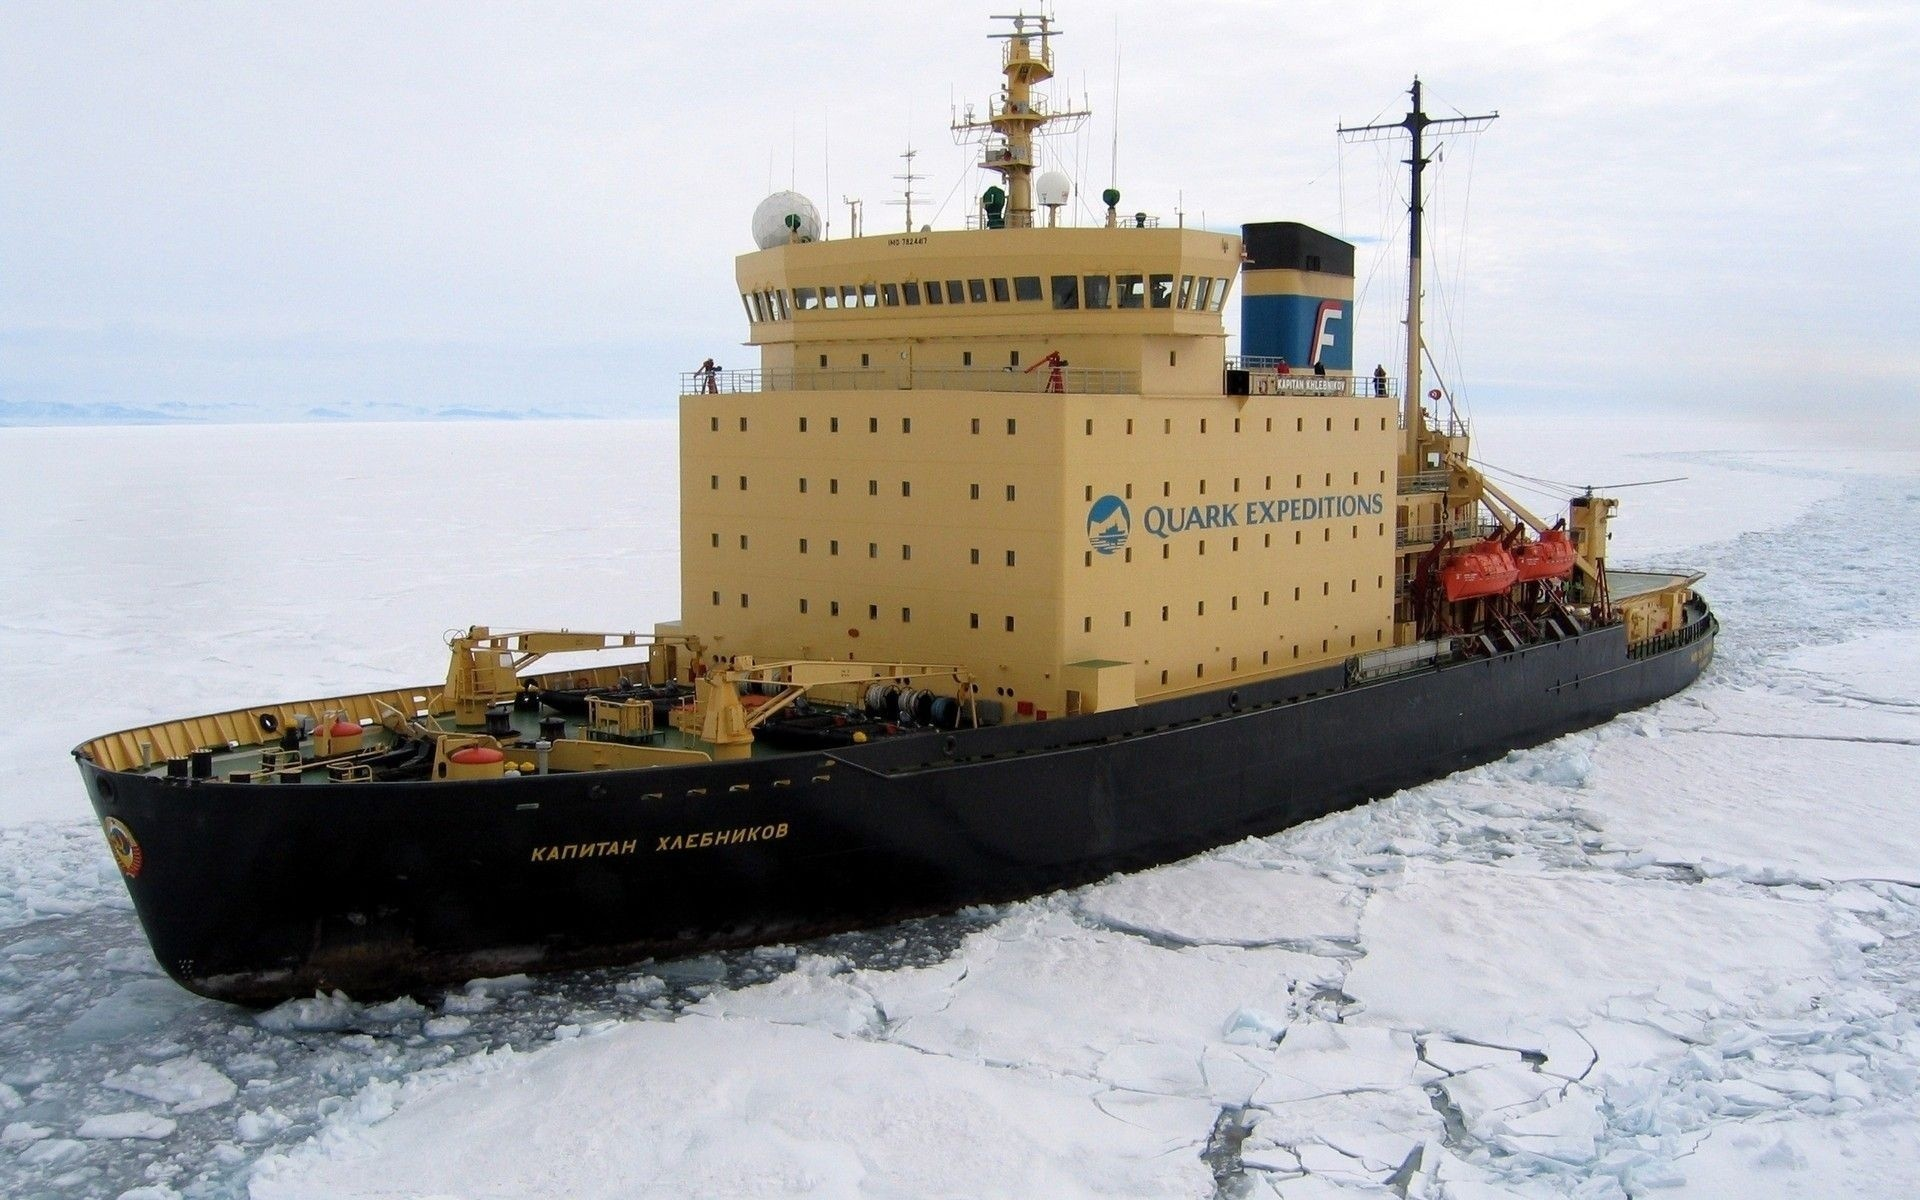 icebreakers transportation system watercraft sea ship water vehicle travel industry outdoors ocean harbor sky nautical boat seashore